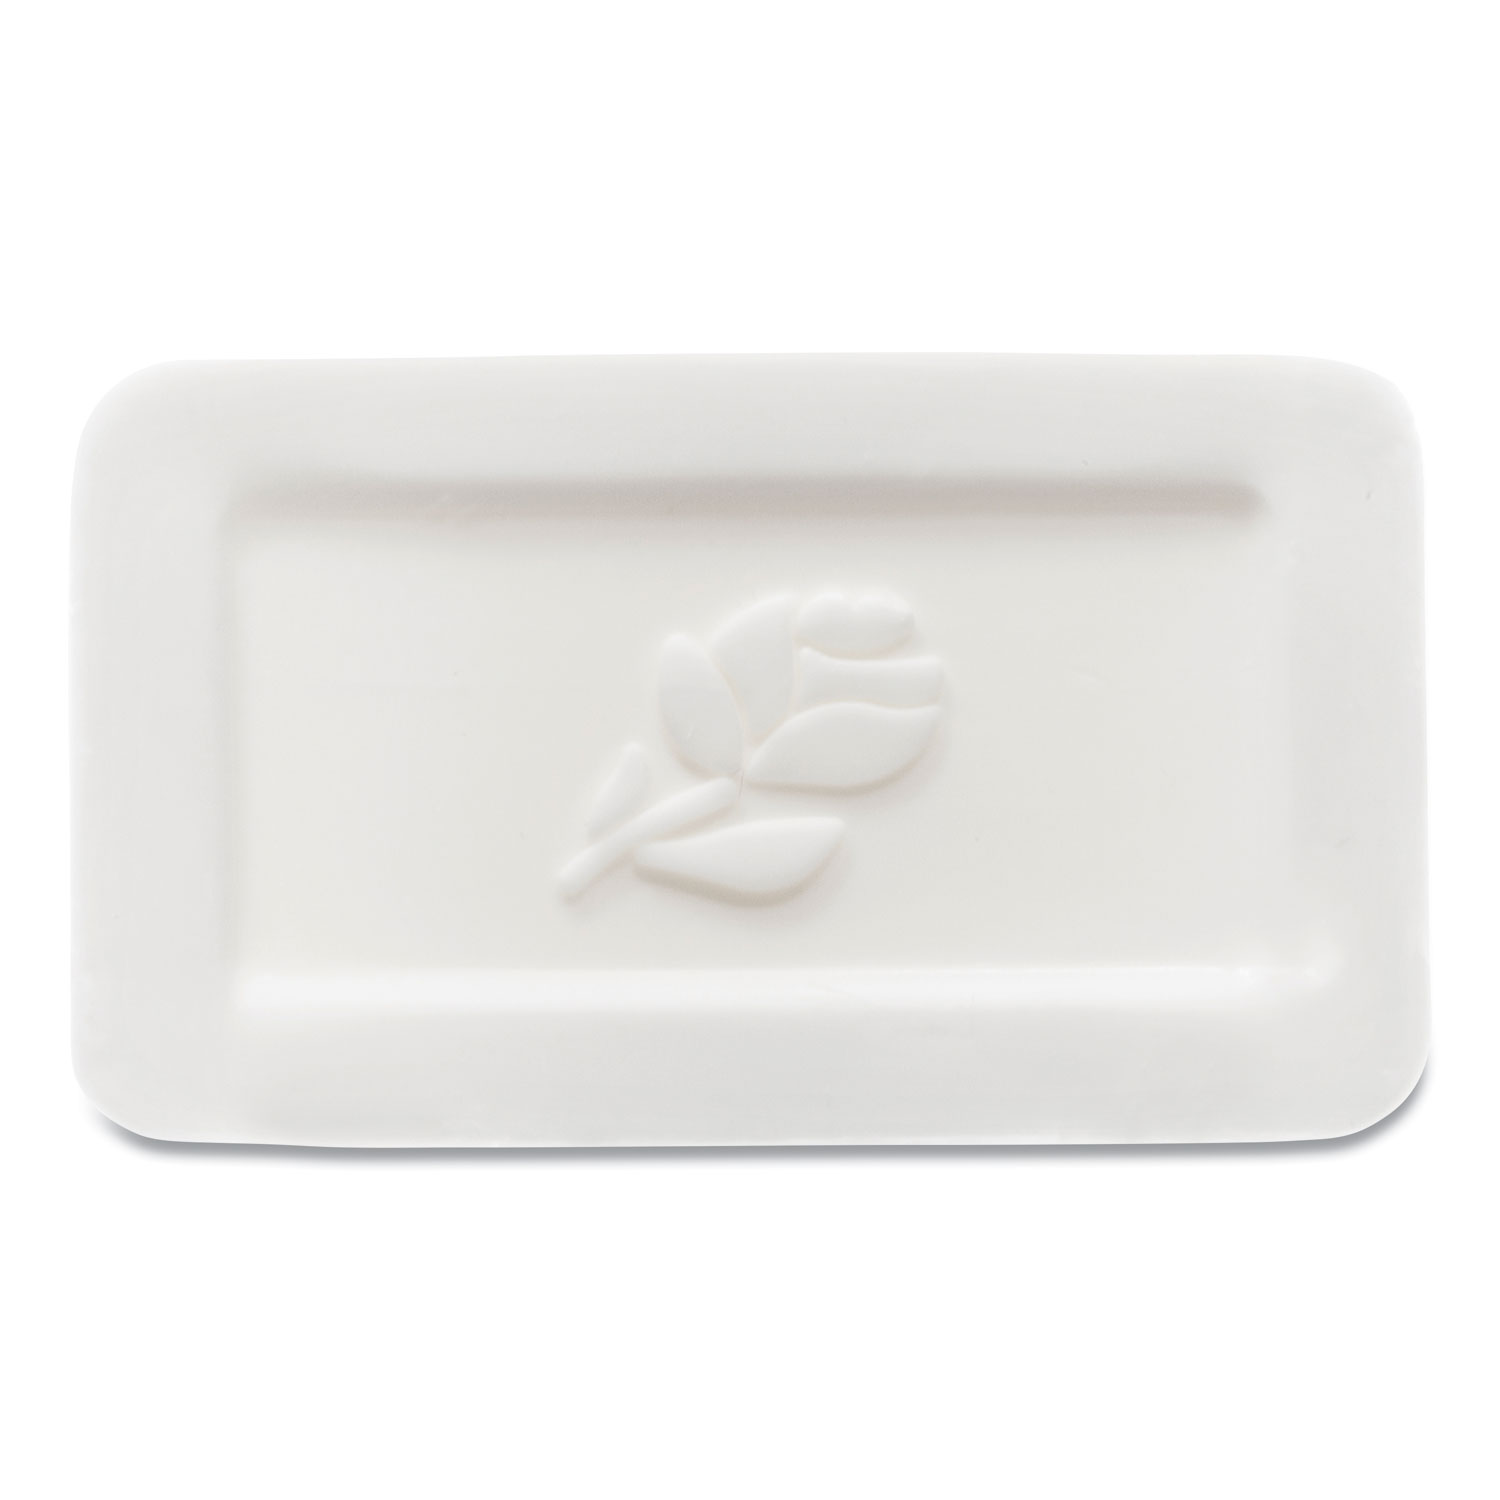 Good Day™ Unwrapped Amenity Bar Soap with PCMX, Fresh, # 1 1/2, 500/Carton